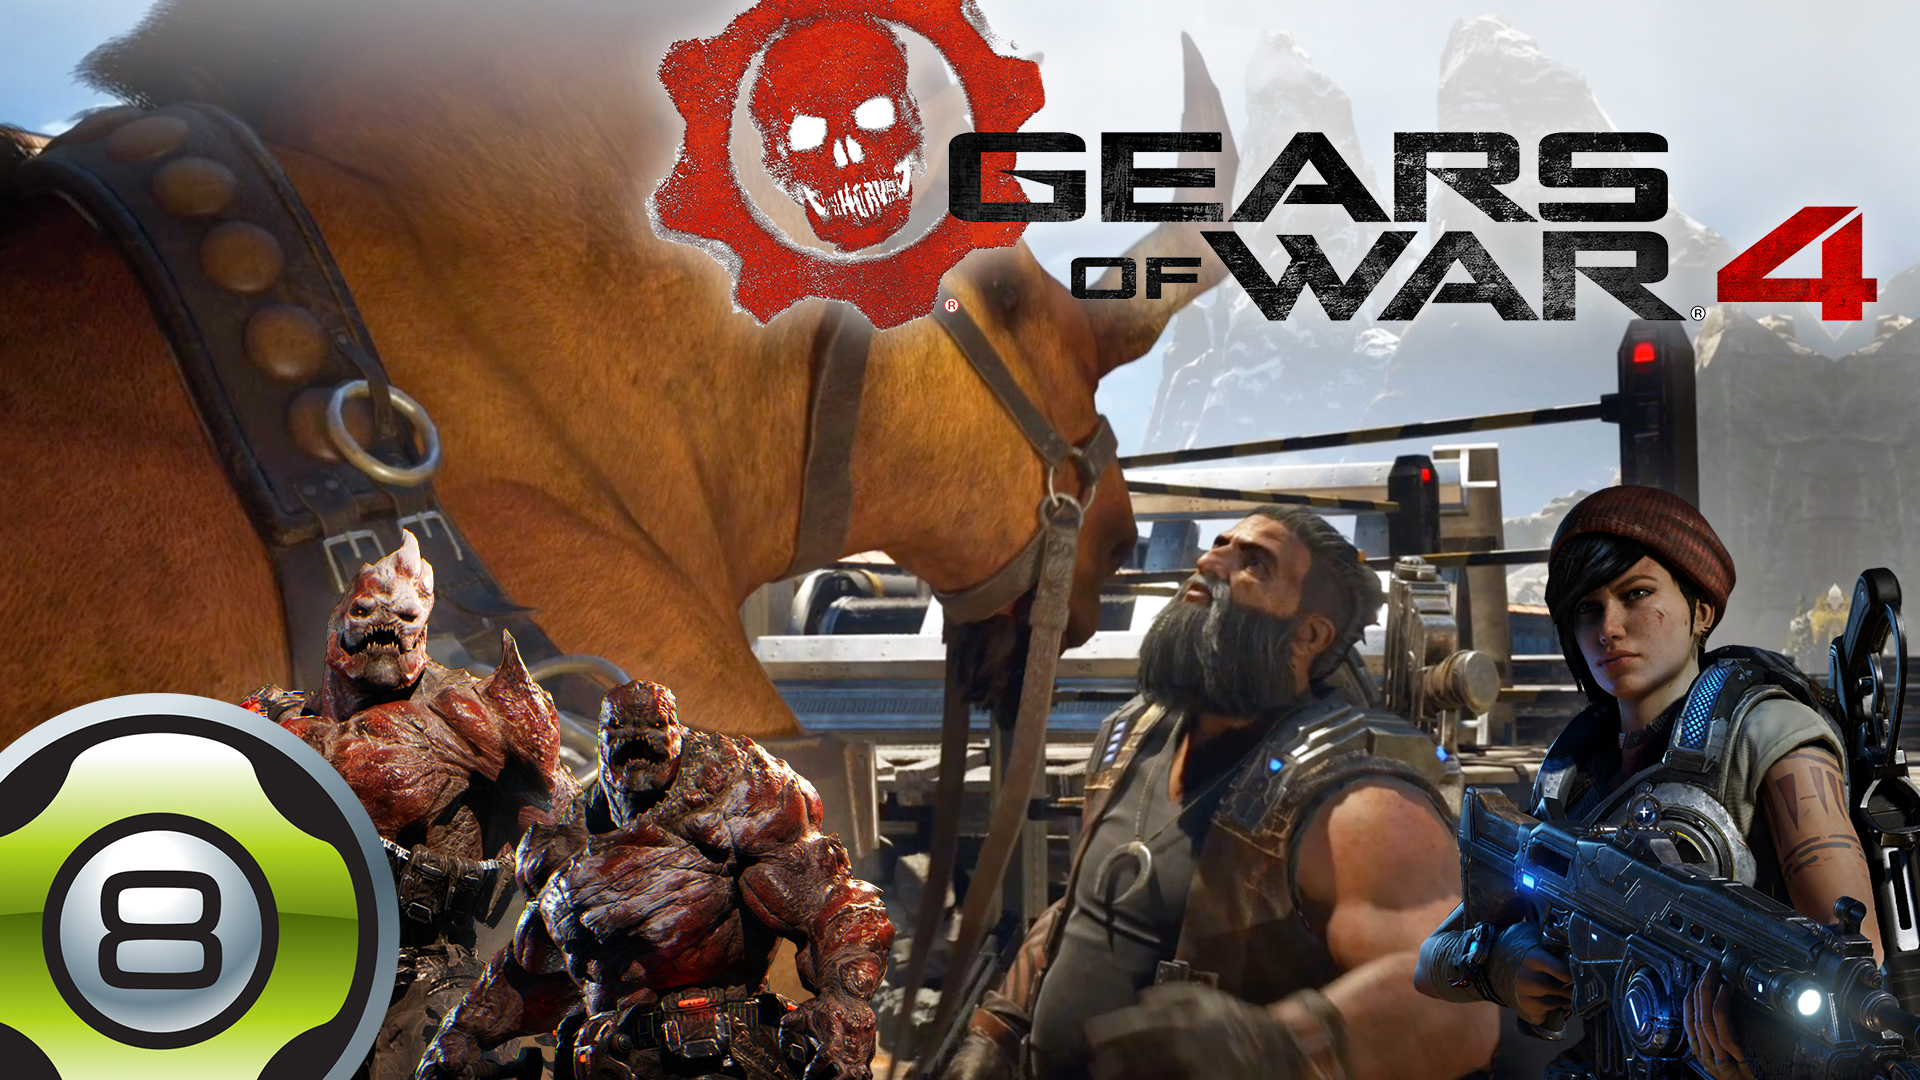 Let's Play sur Gears of War 4